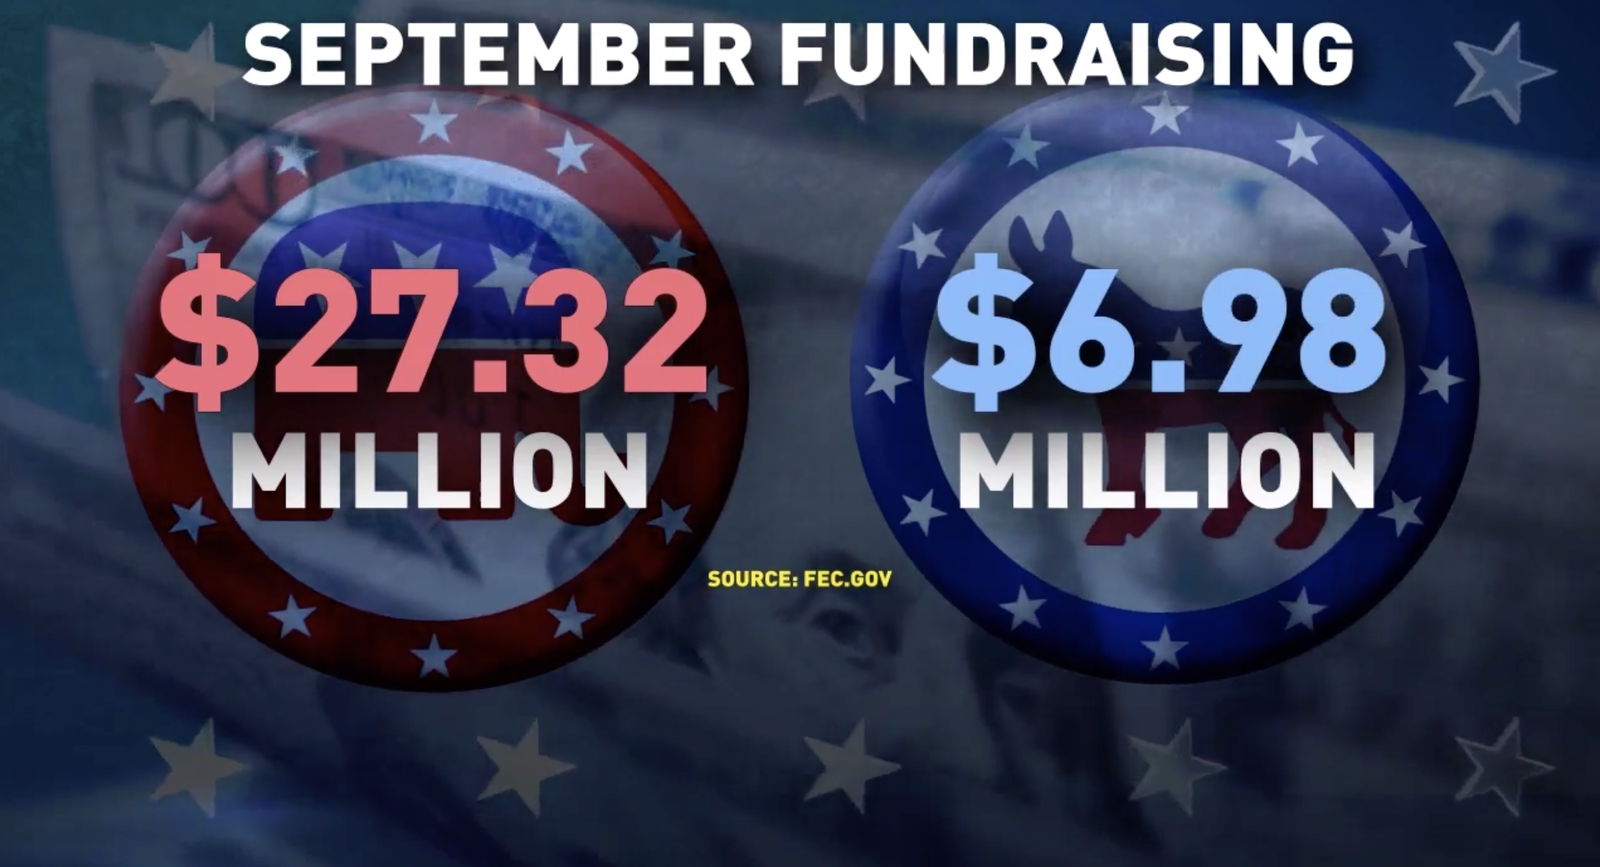 The Republican National Committe boasted a record haul in September: $27 million, compared to just under $7 million for Democrats. (Photo: Sinclair Broadcast Group)